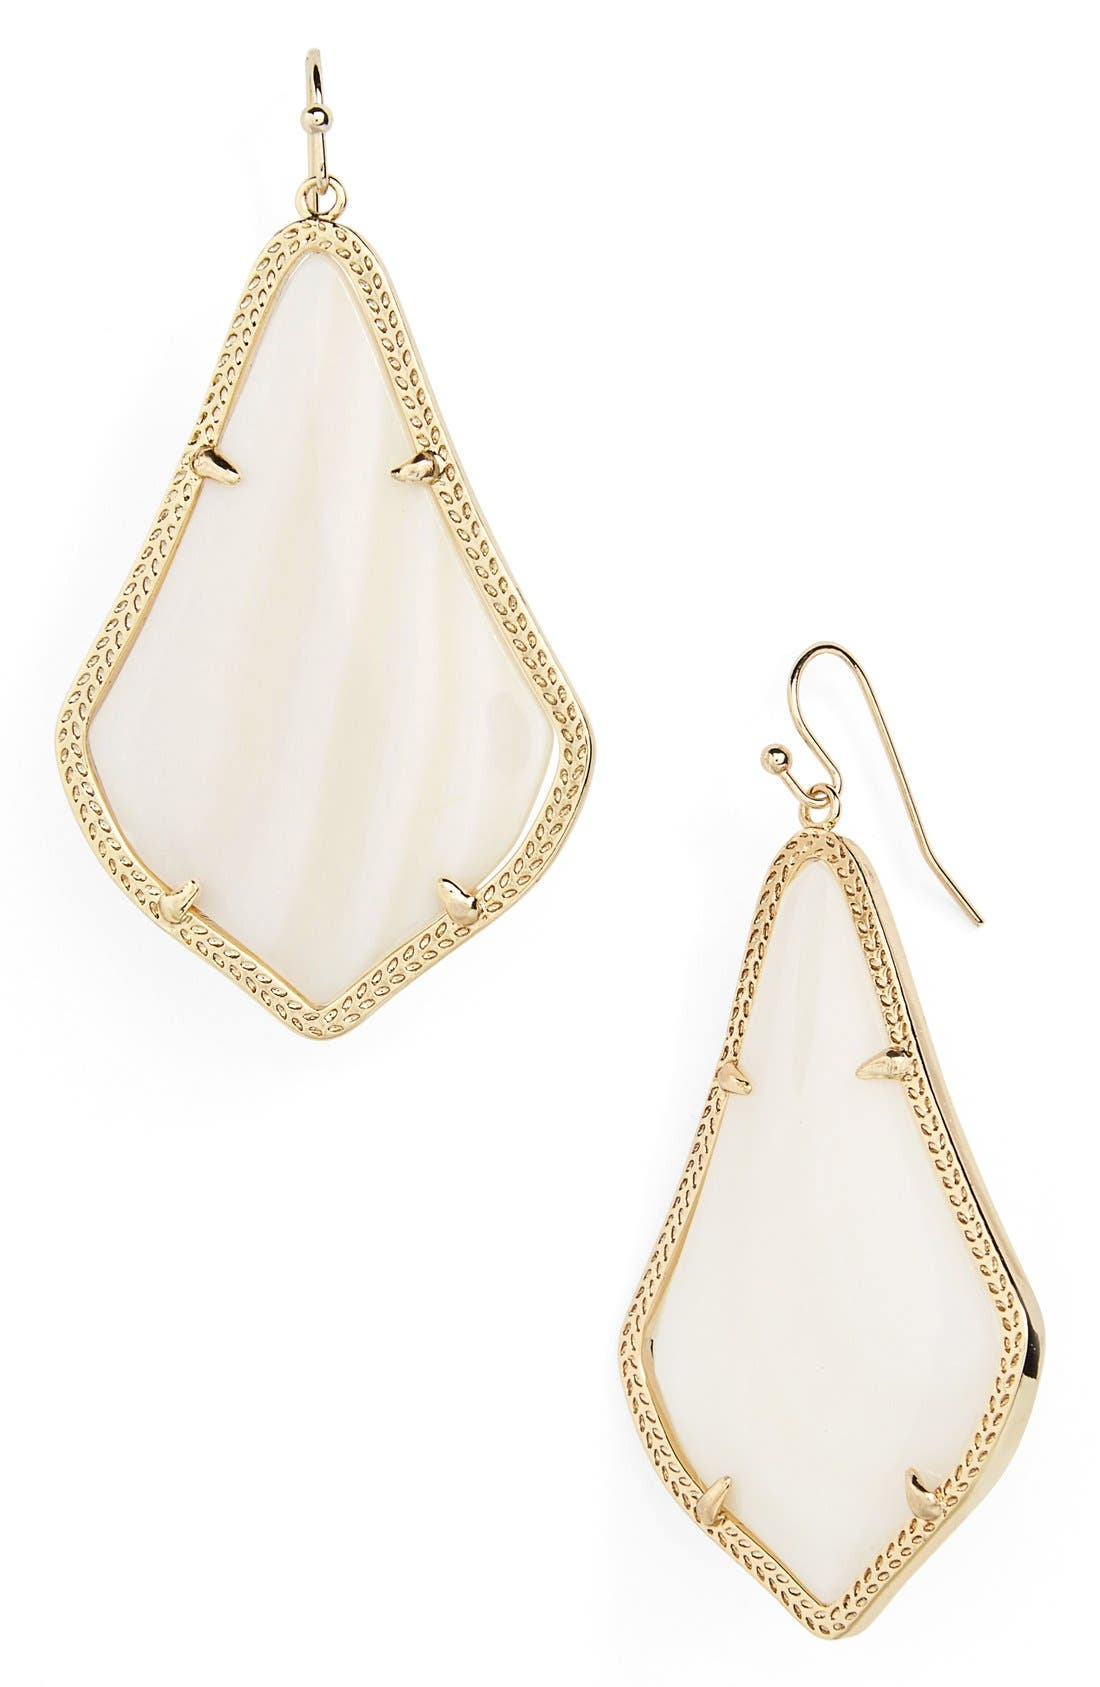 Main Image - Kendra Scott 'Alexandra' Large Drop Earrings